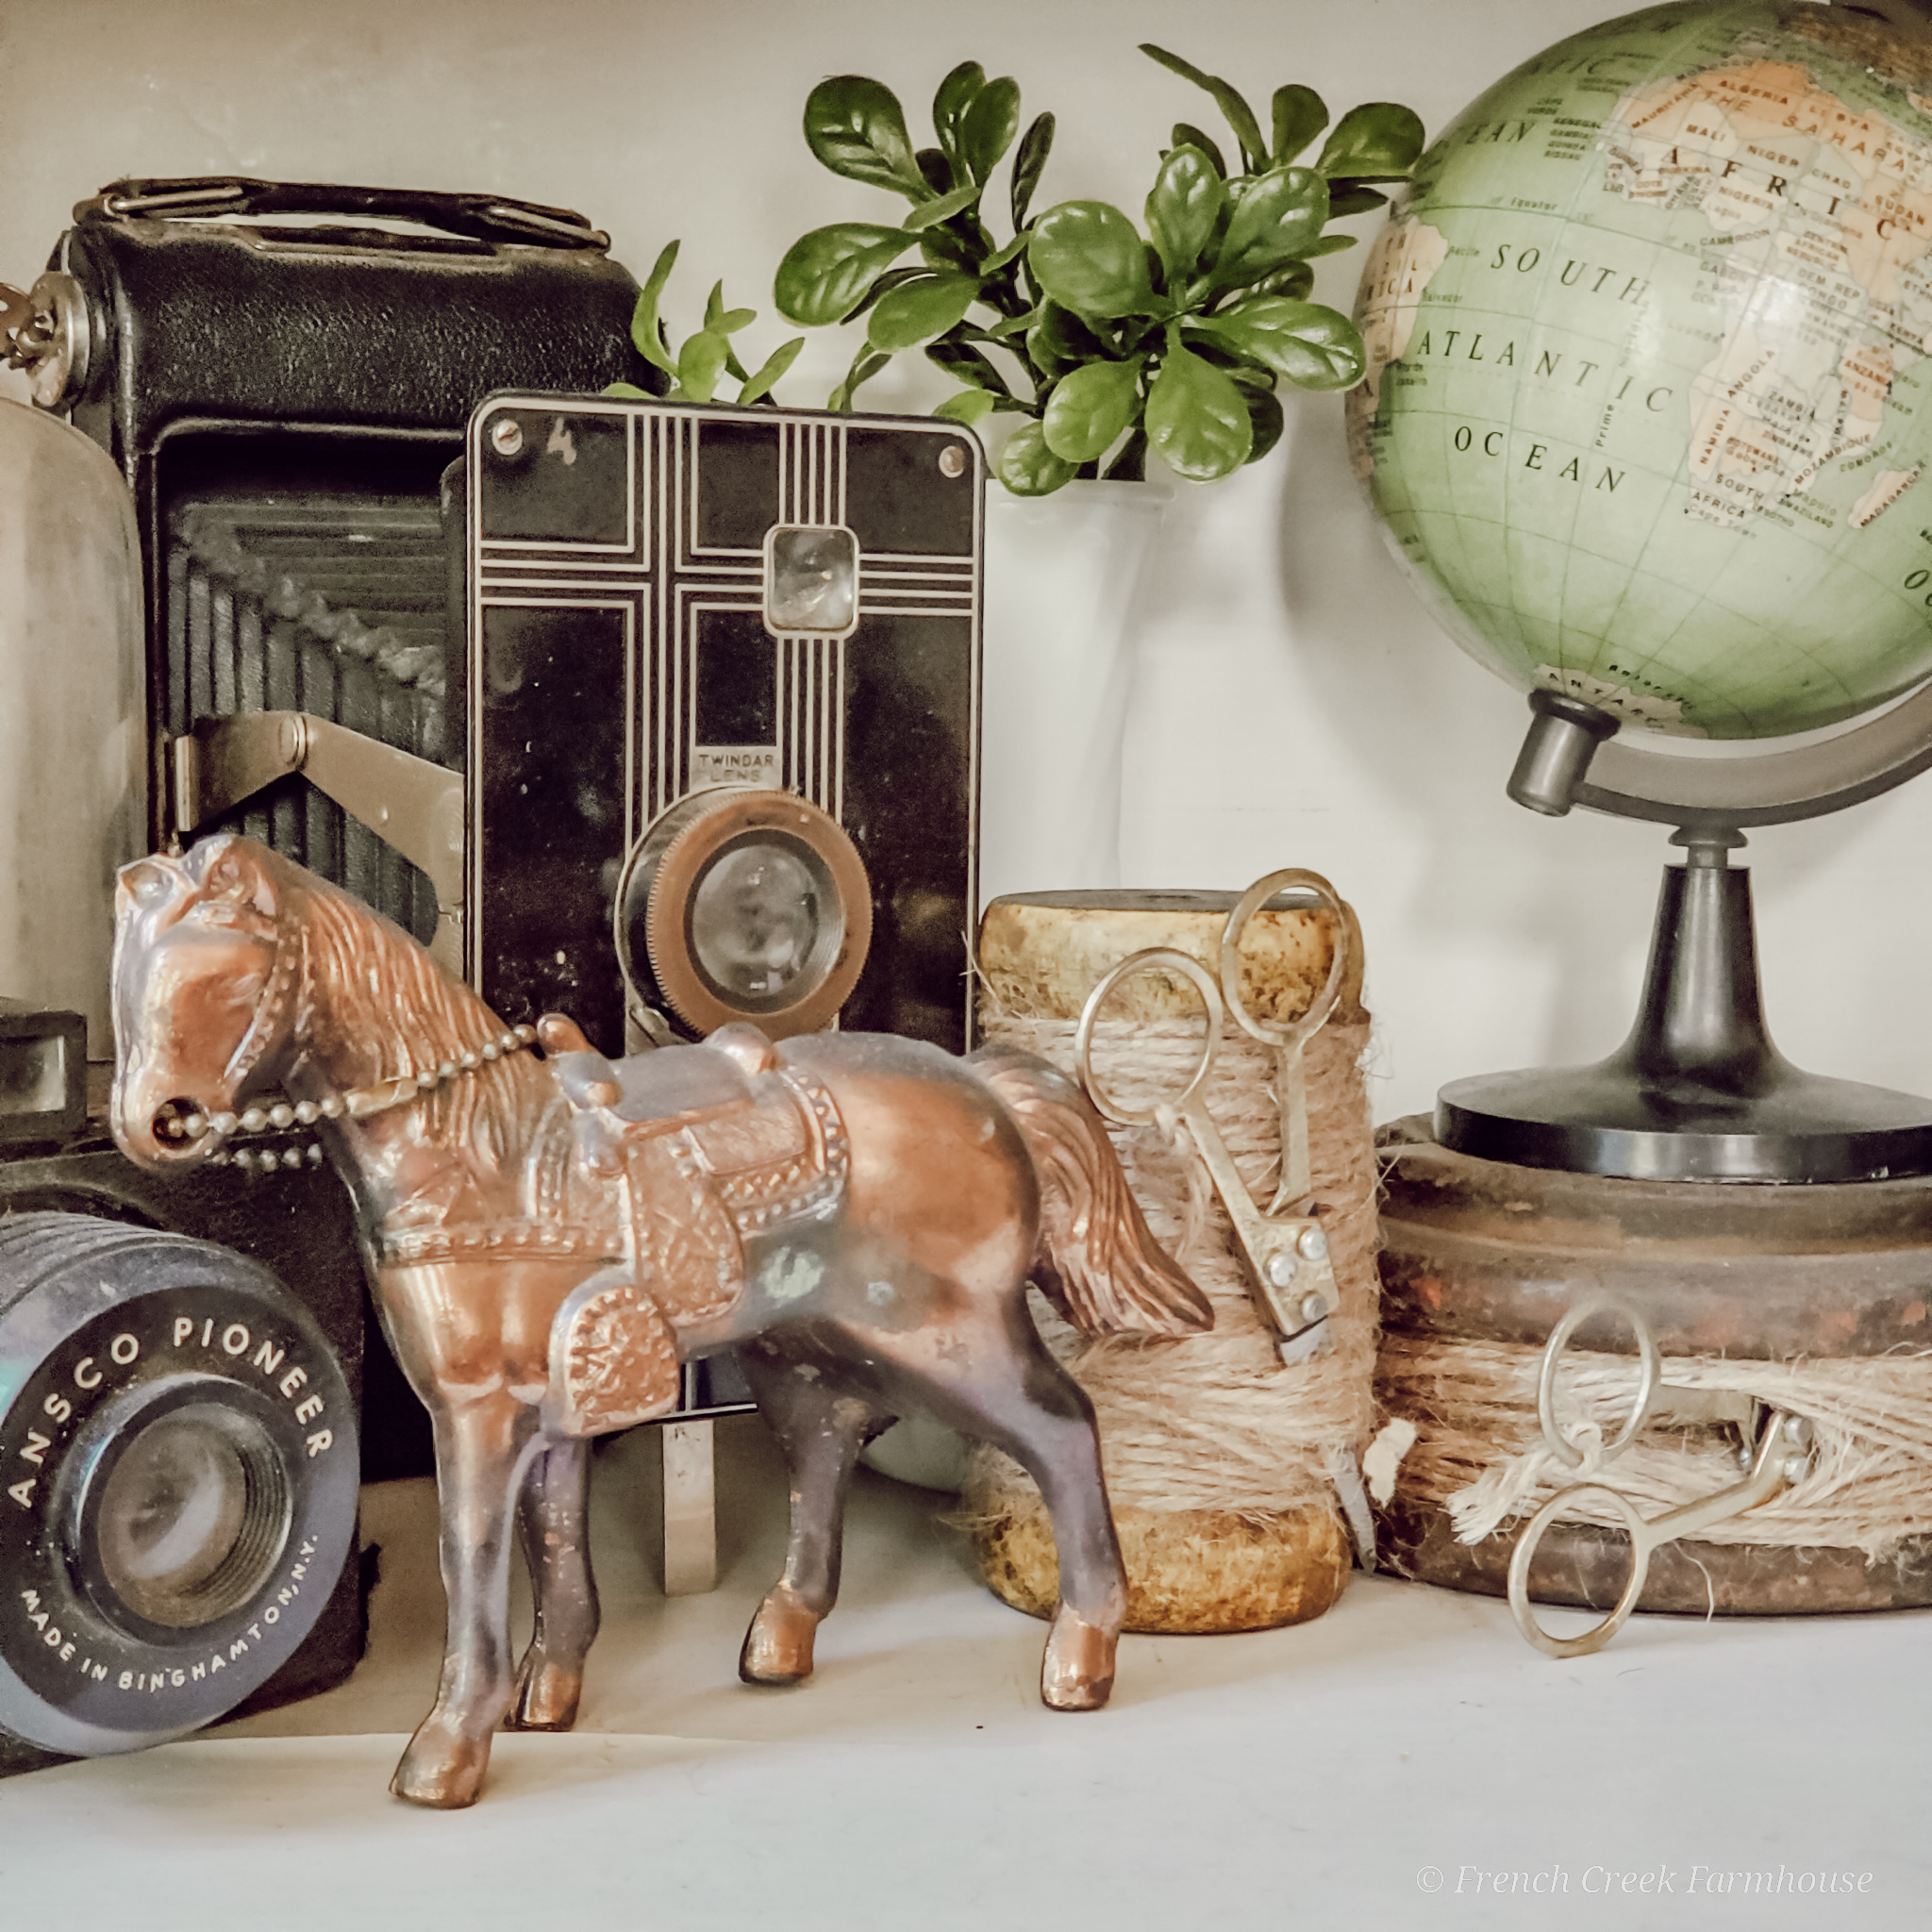 Take a look at this amazing collection of vintage finds that you can shop from home